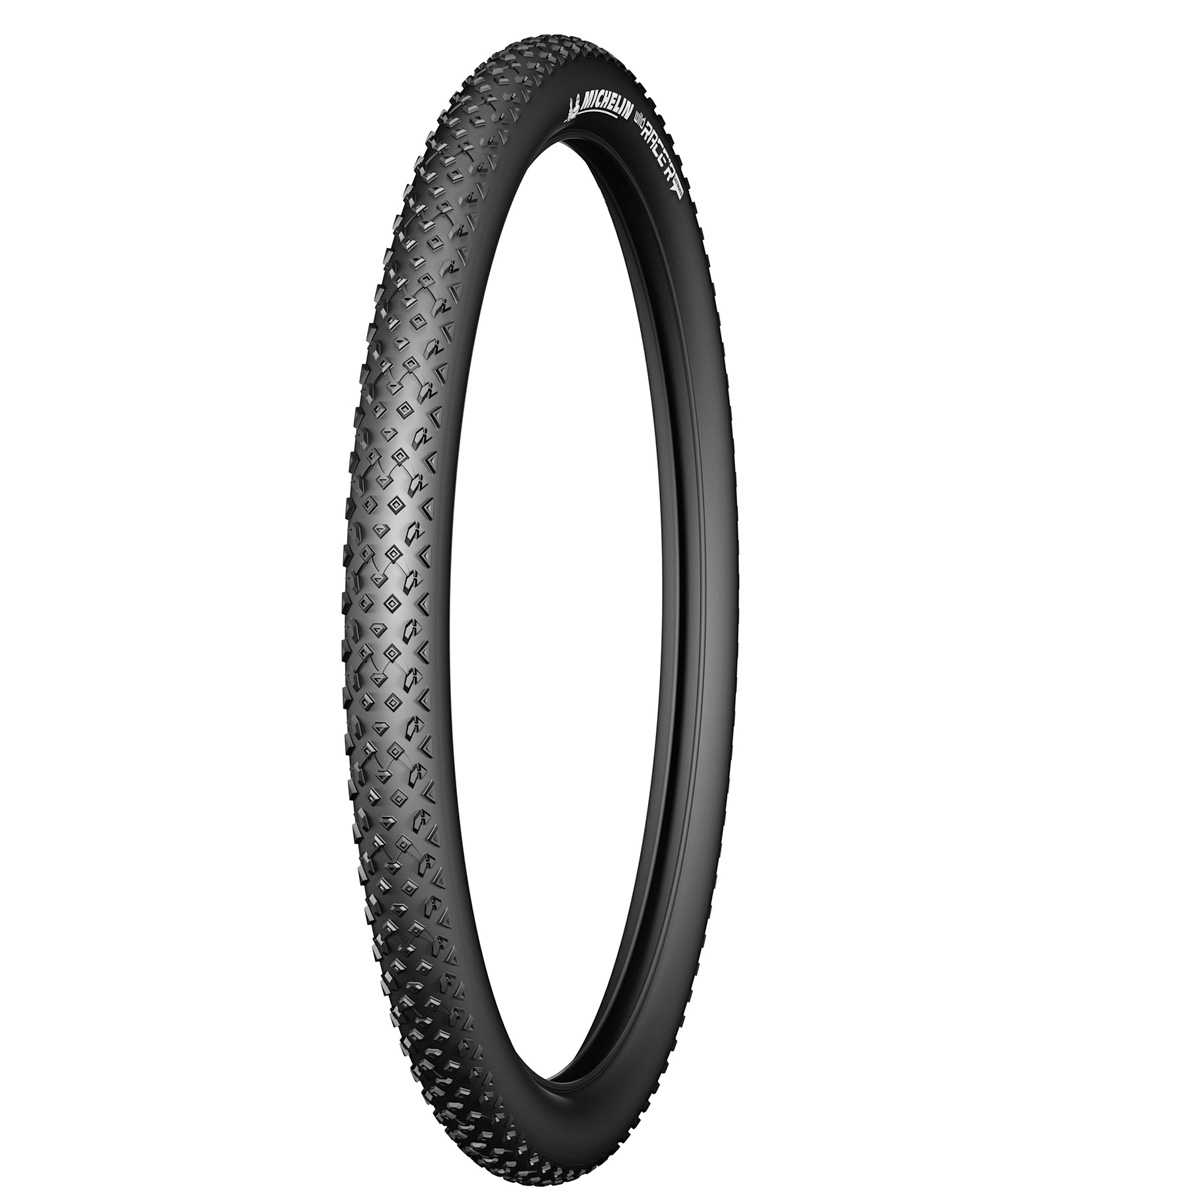 Pneu 26 x 2.25 Michelin wild race'r advanced (TS - TLR)